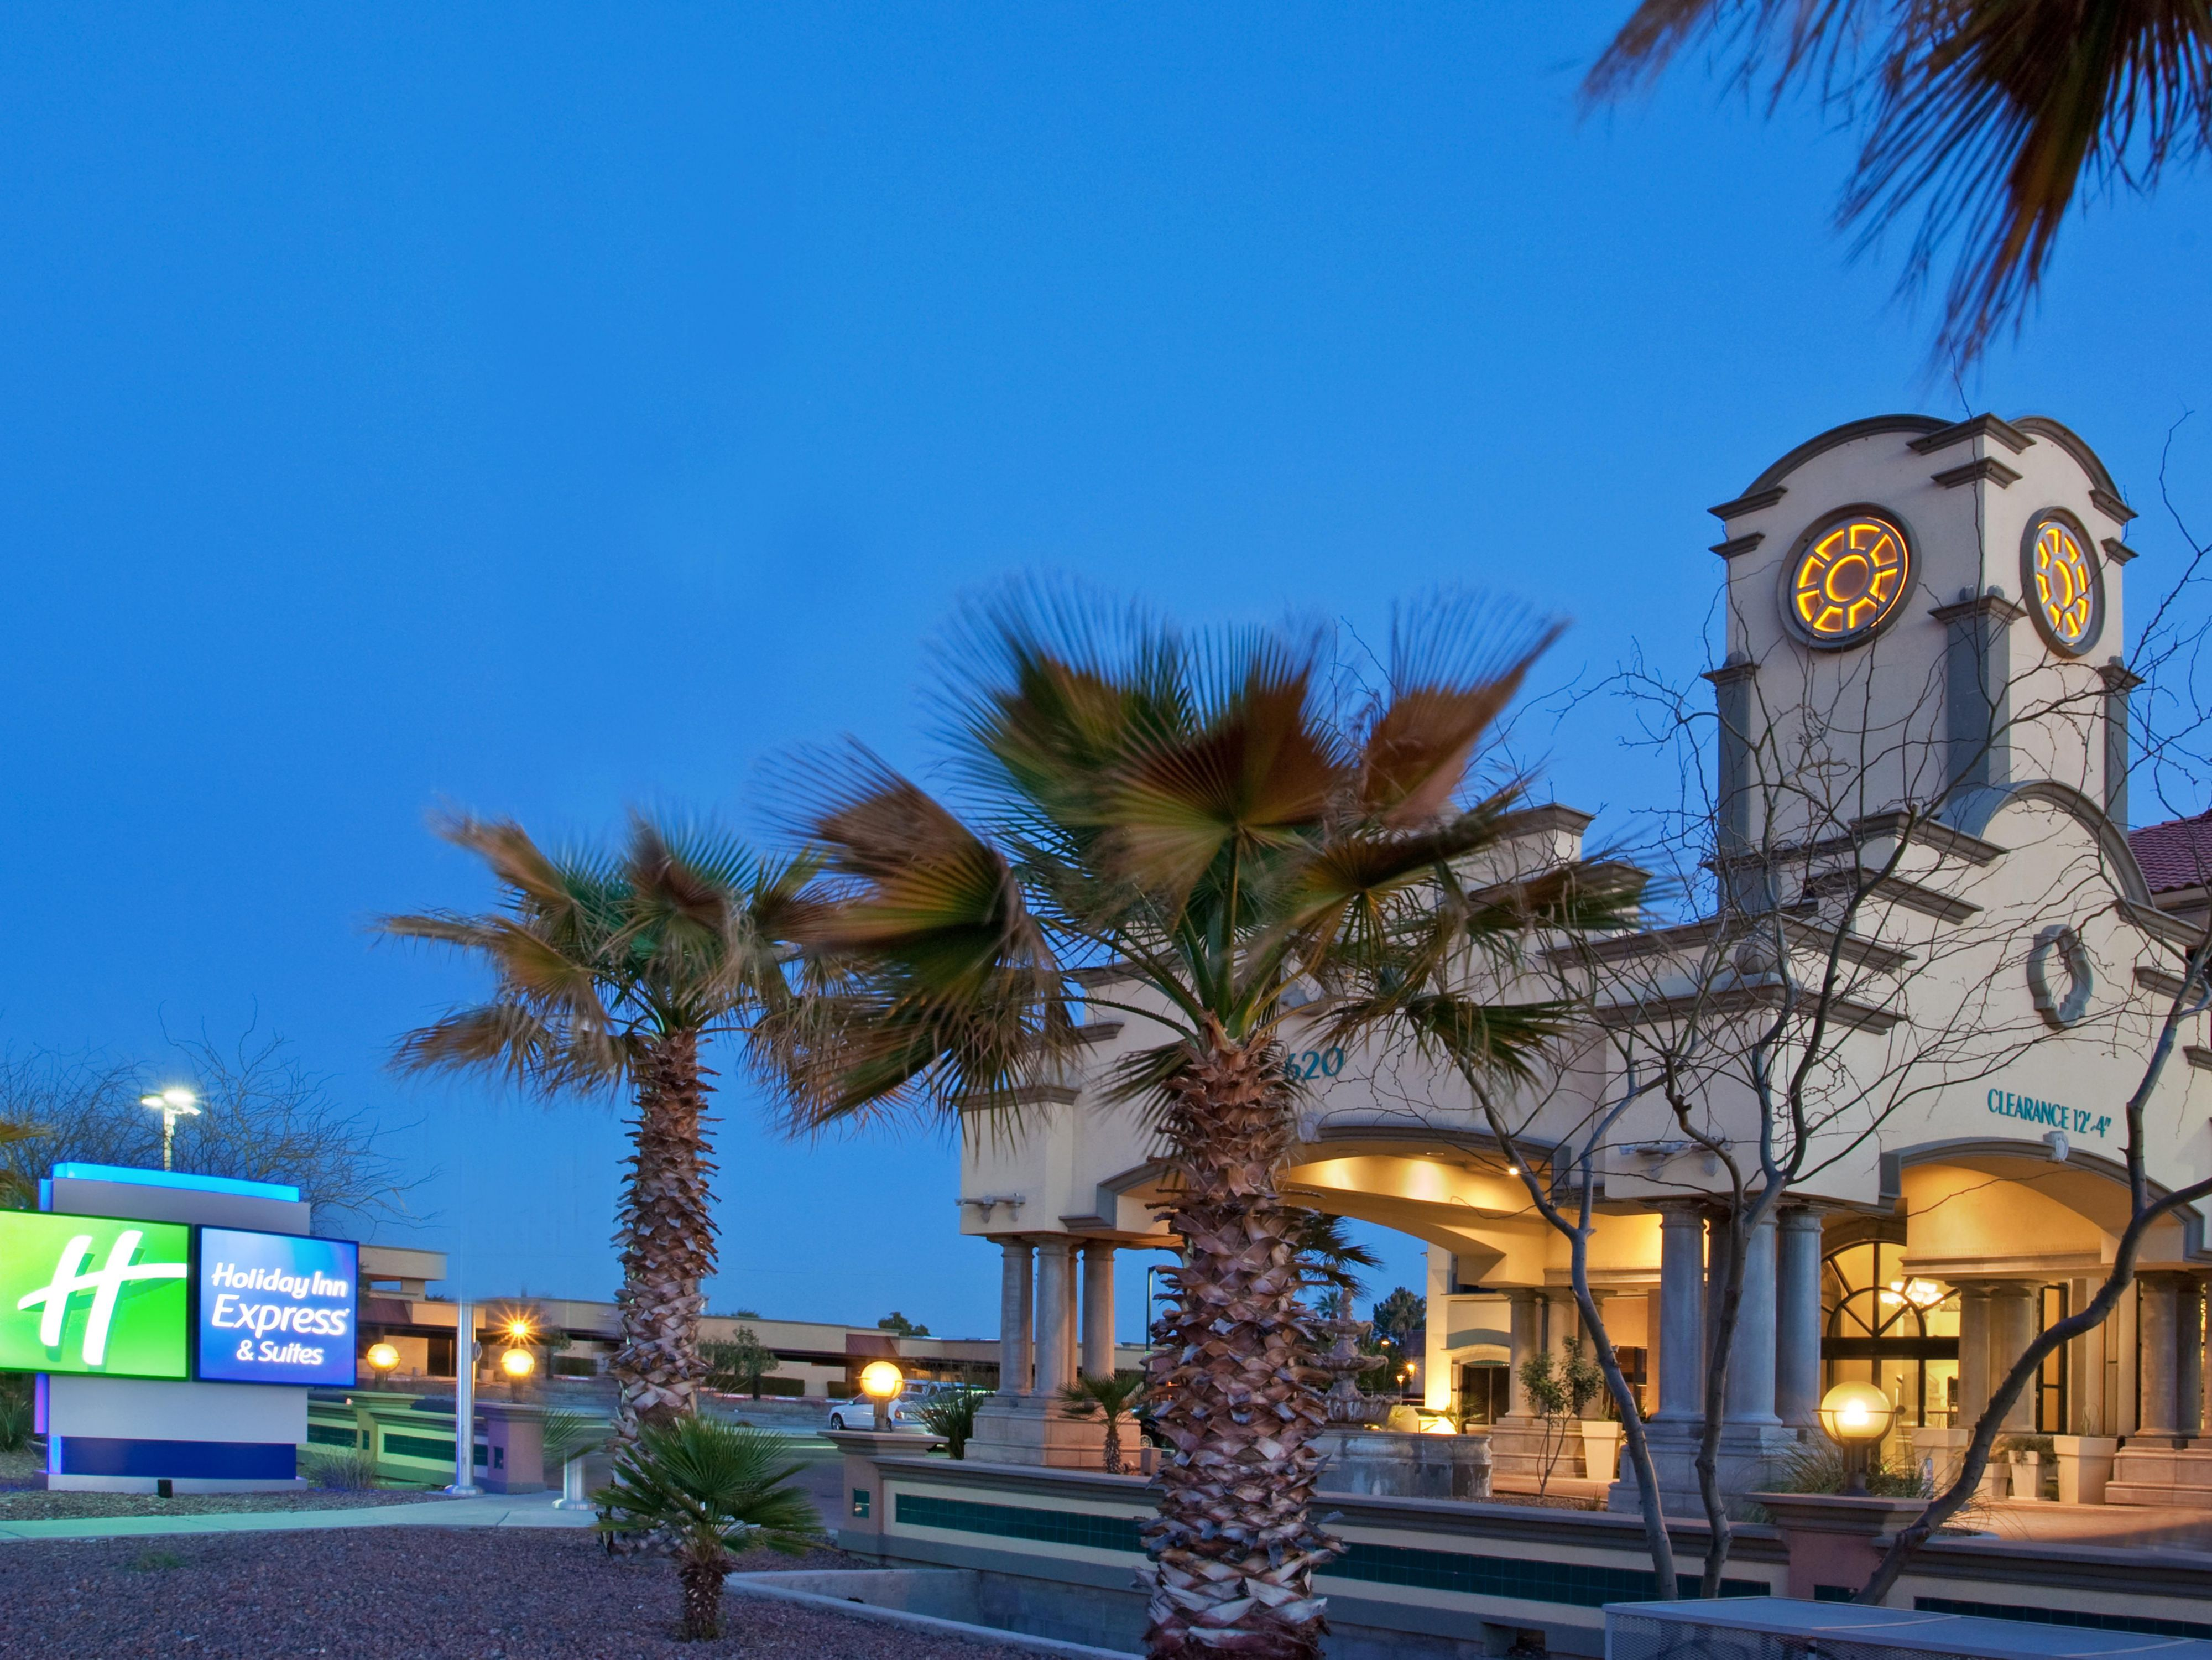 holiday inn express & suites tucson mall hotelihg